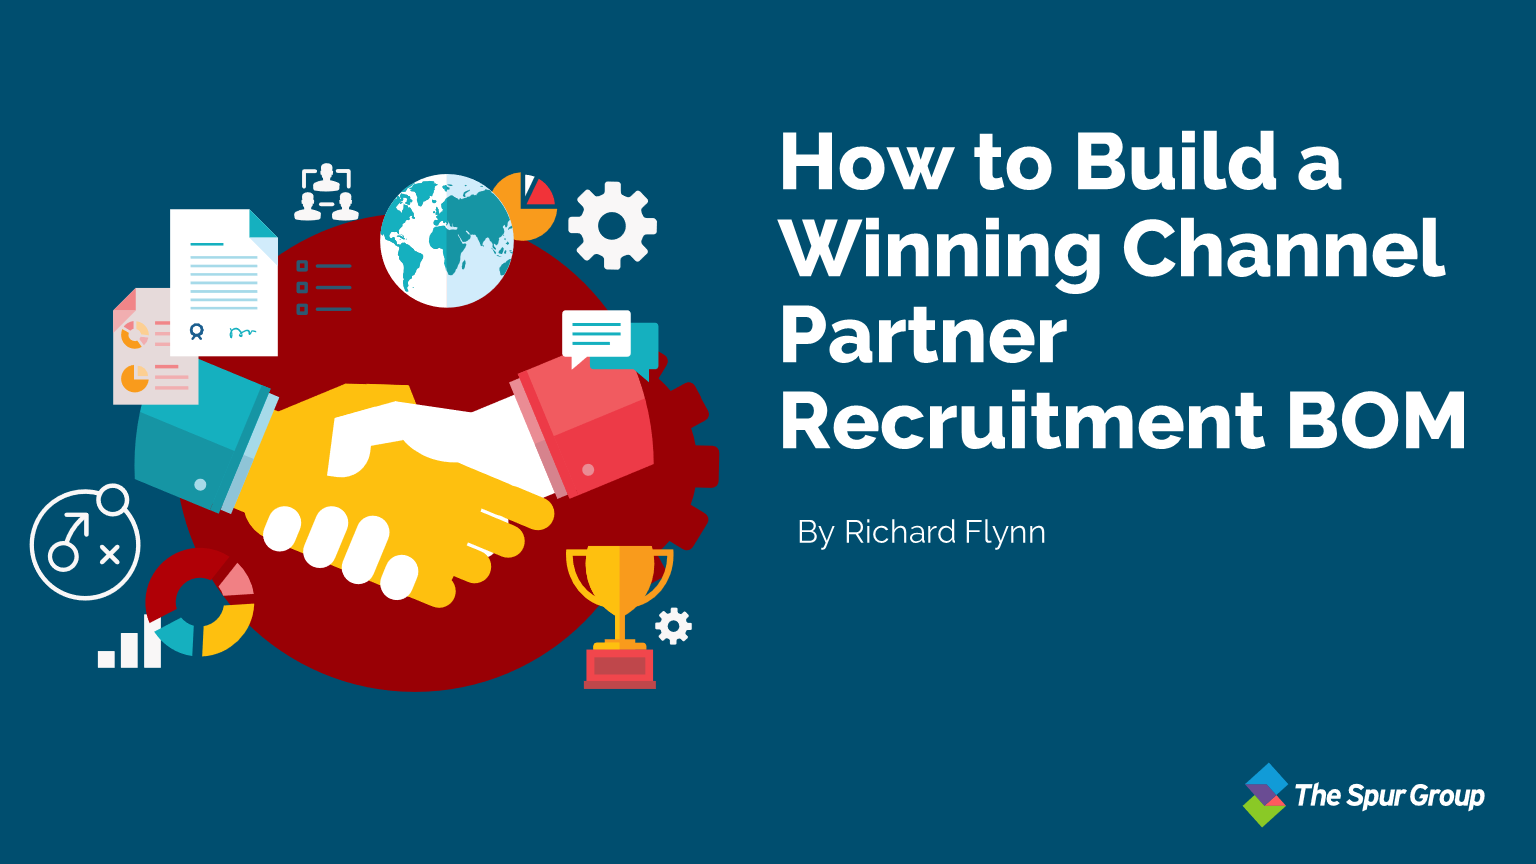 How to Build a Winning Channel Partner Recruitment BOM